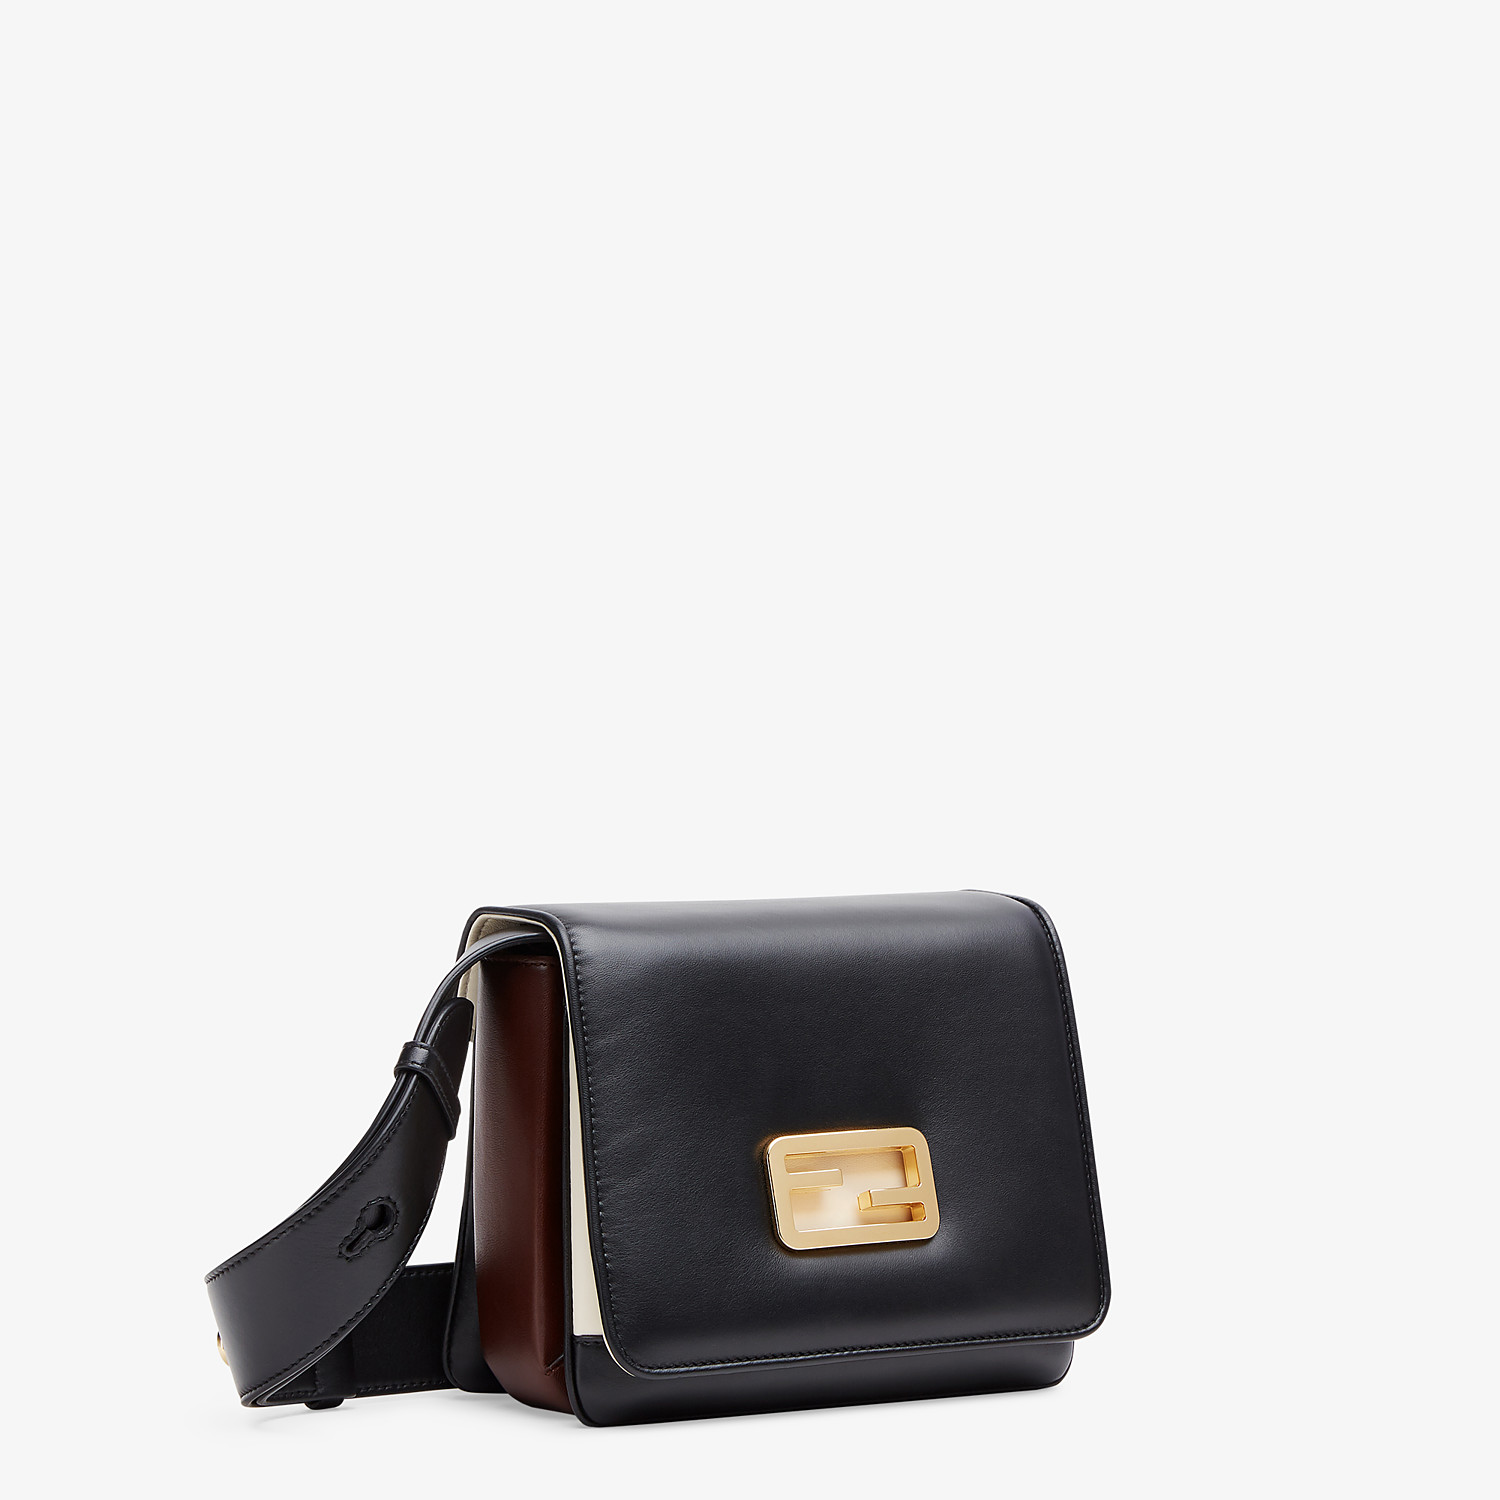 FENDI FENDI ID SMALL - Black leather bag - view 2 detail